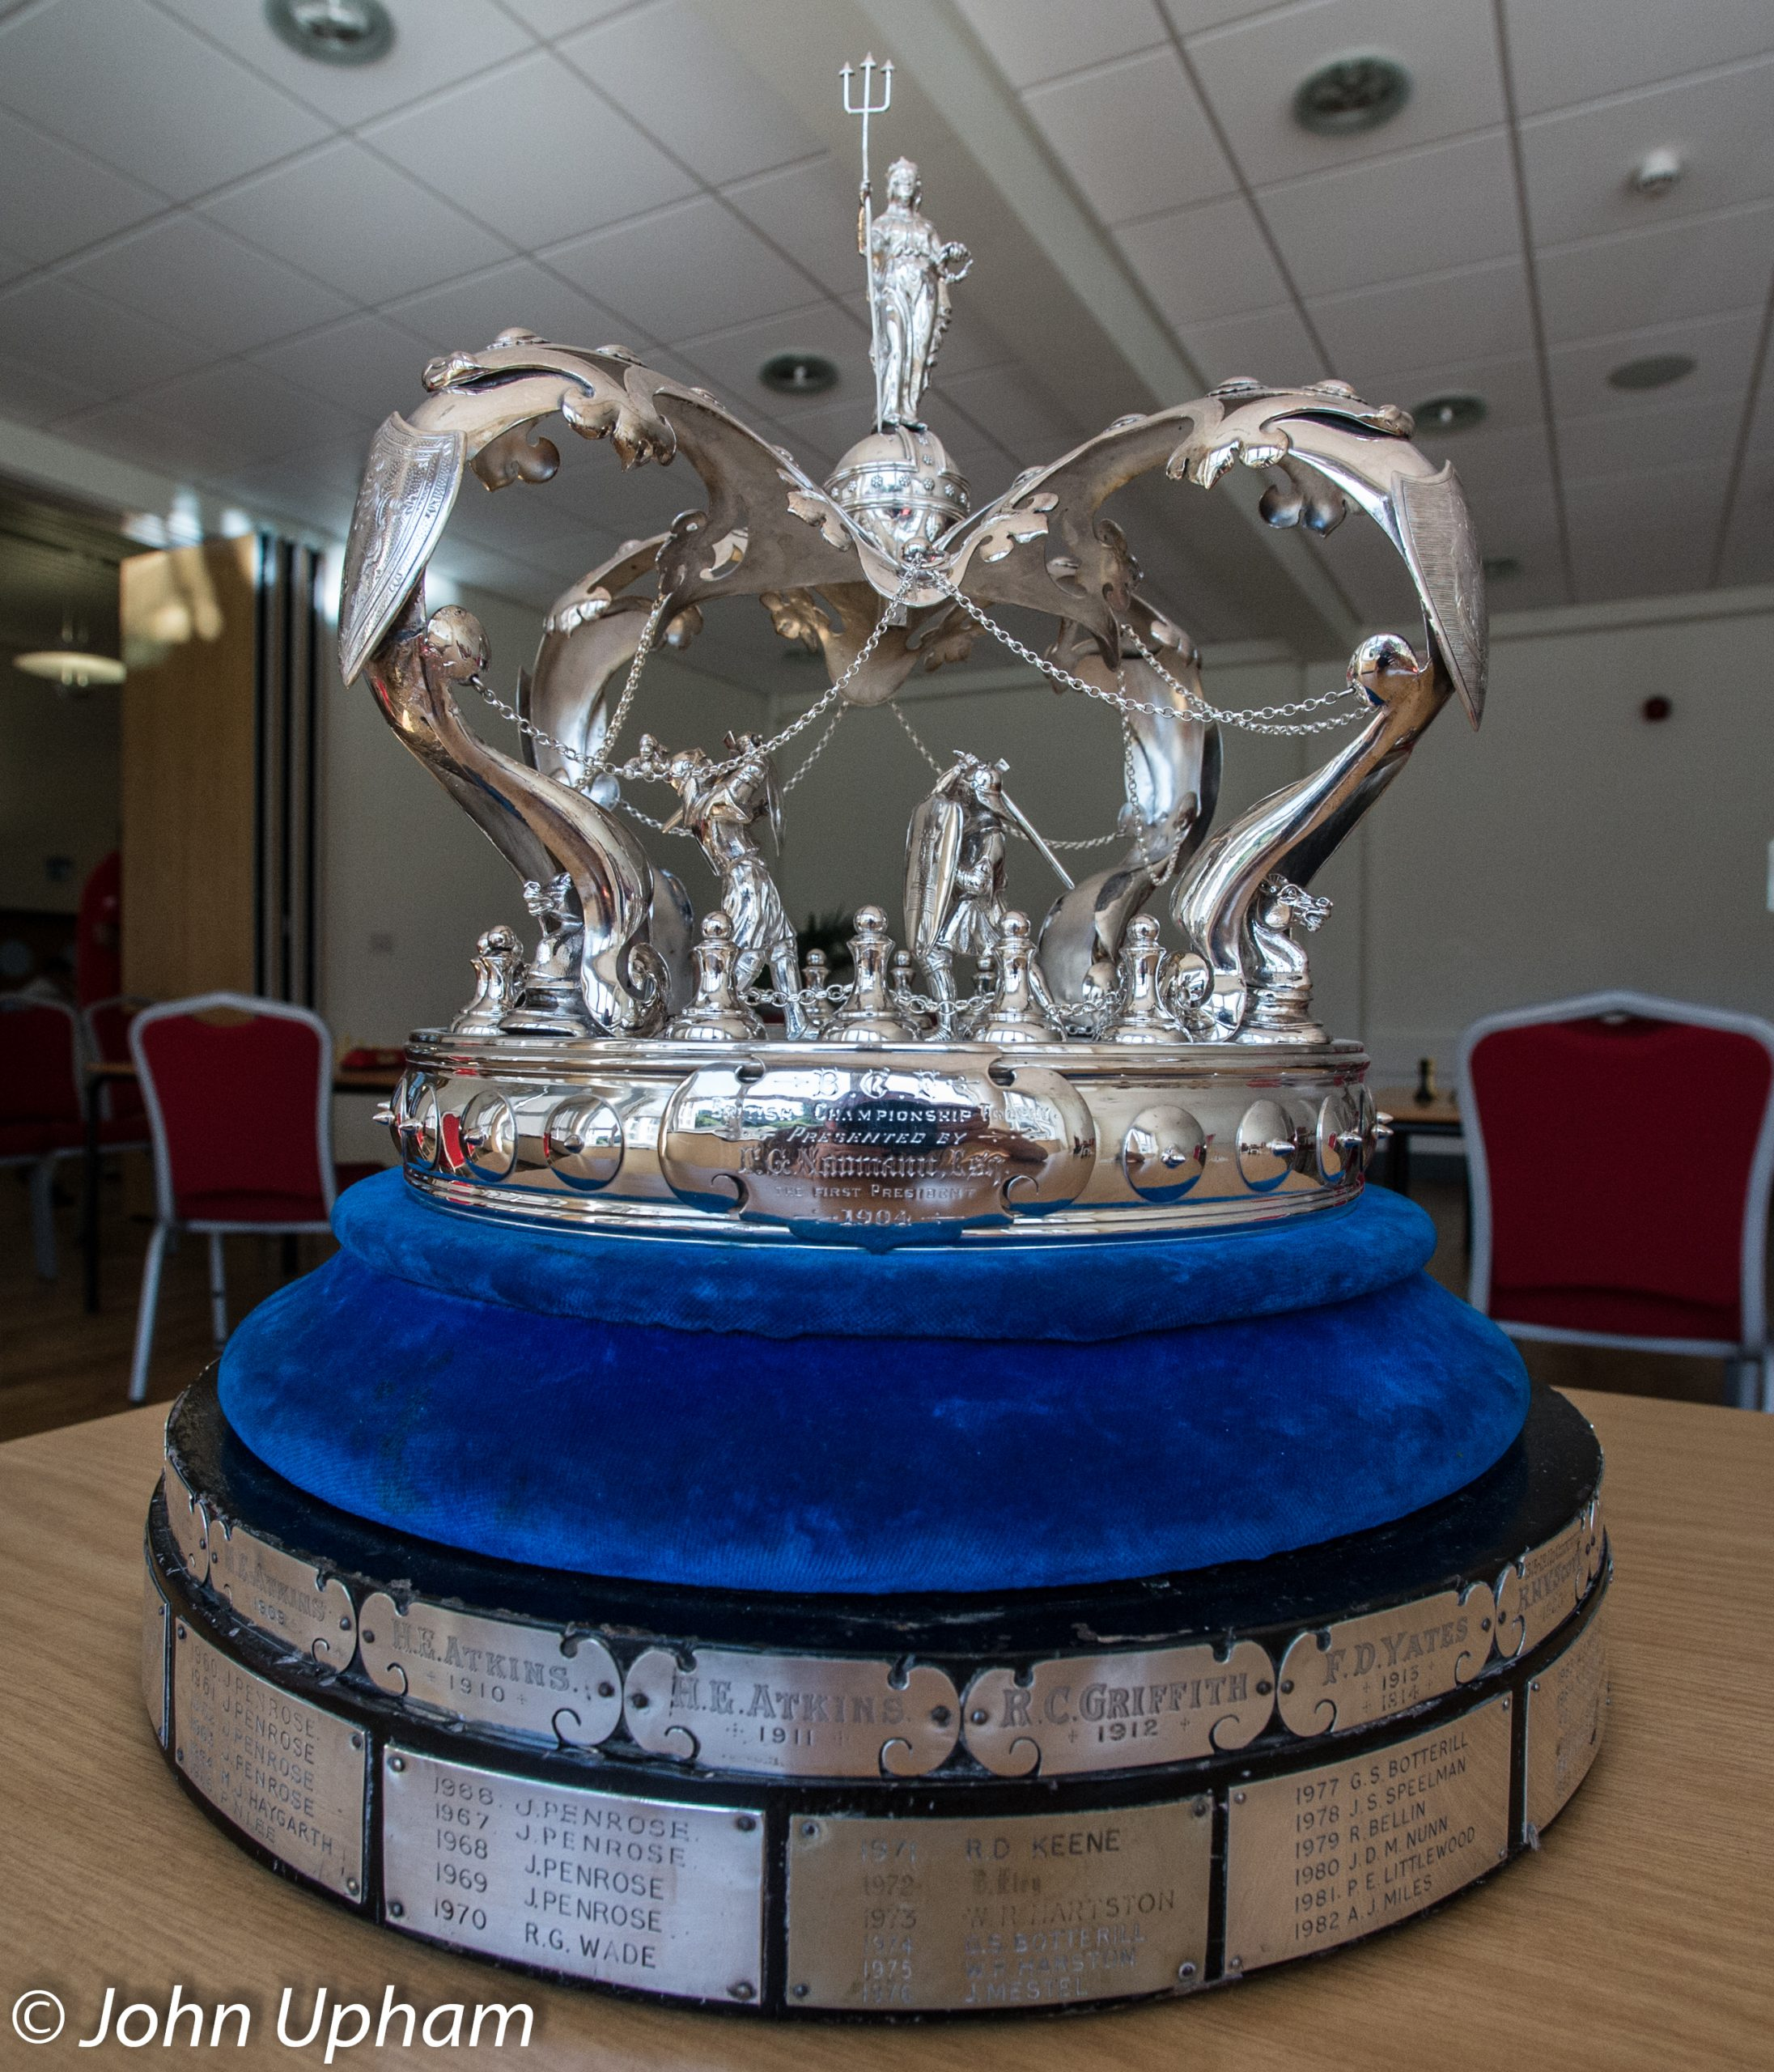 The British Chess Championship Trophy